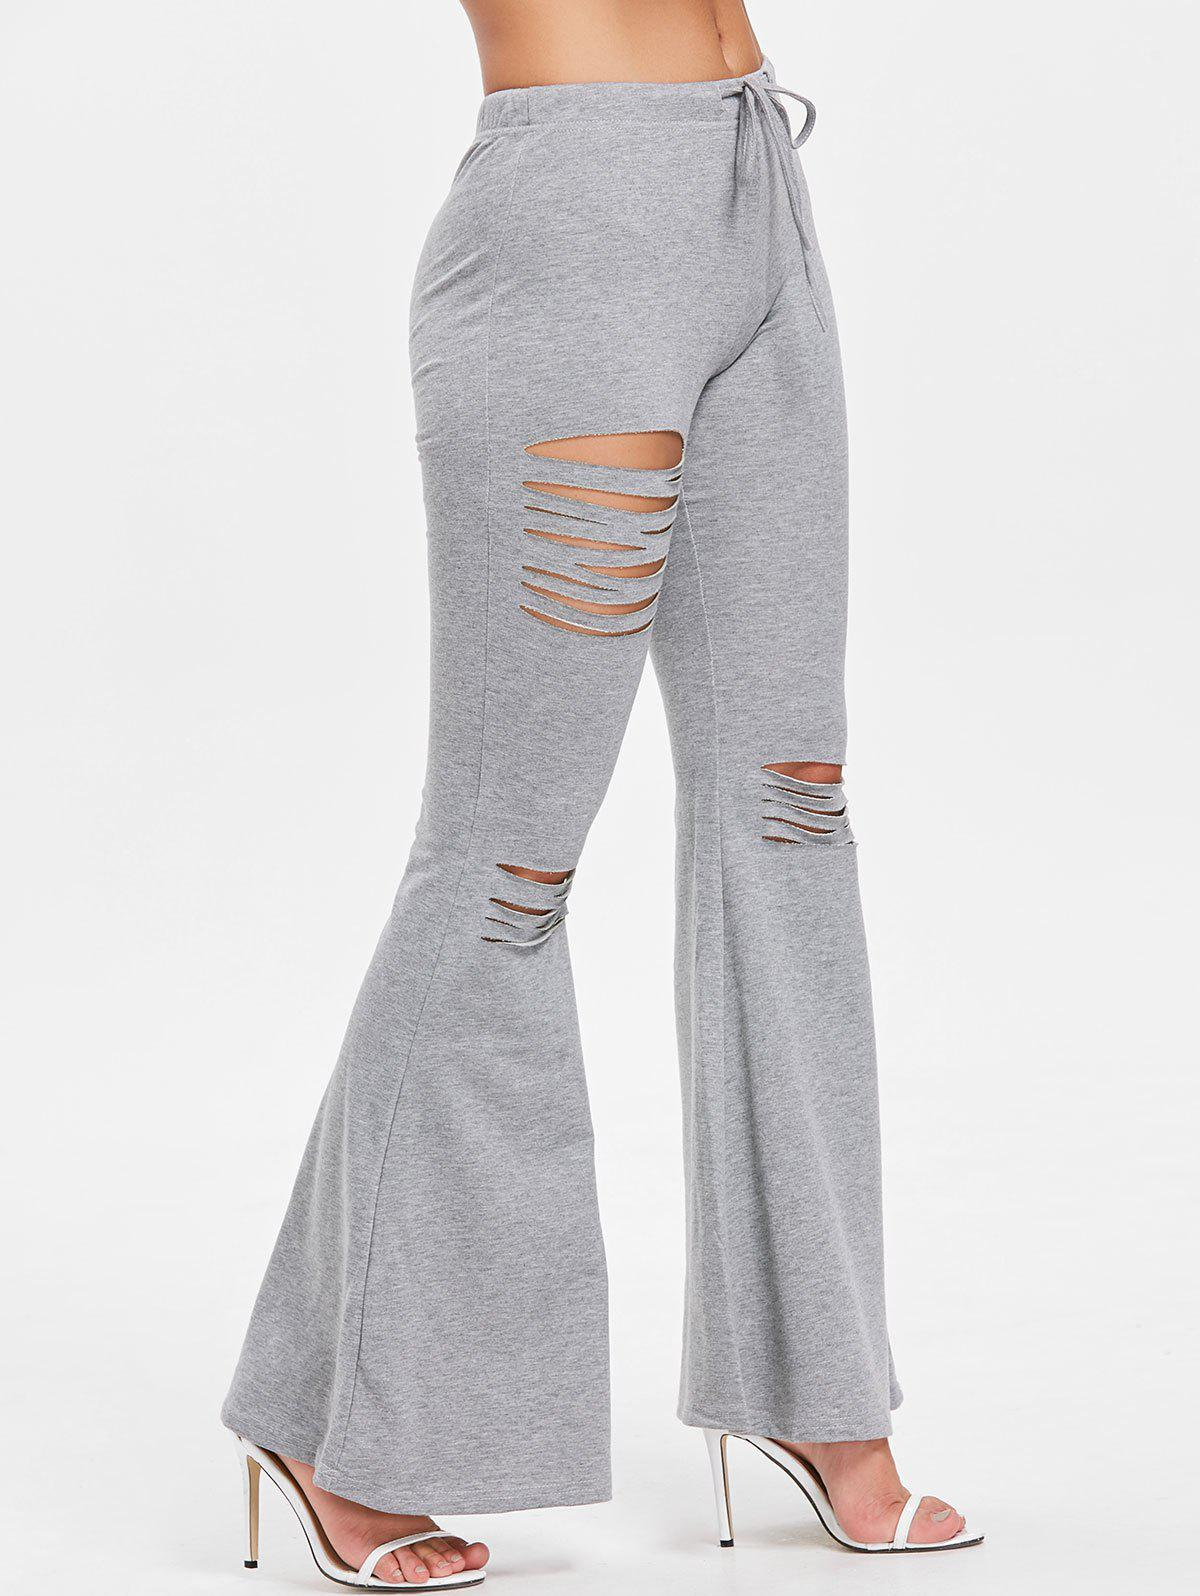 High Rise Ripped Bell Bottom Pants - GRAY 2XL